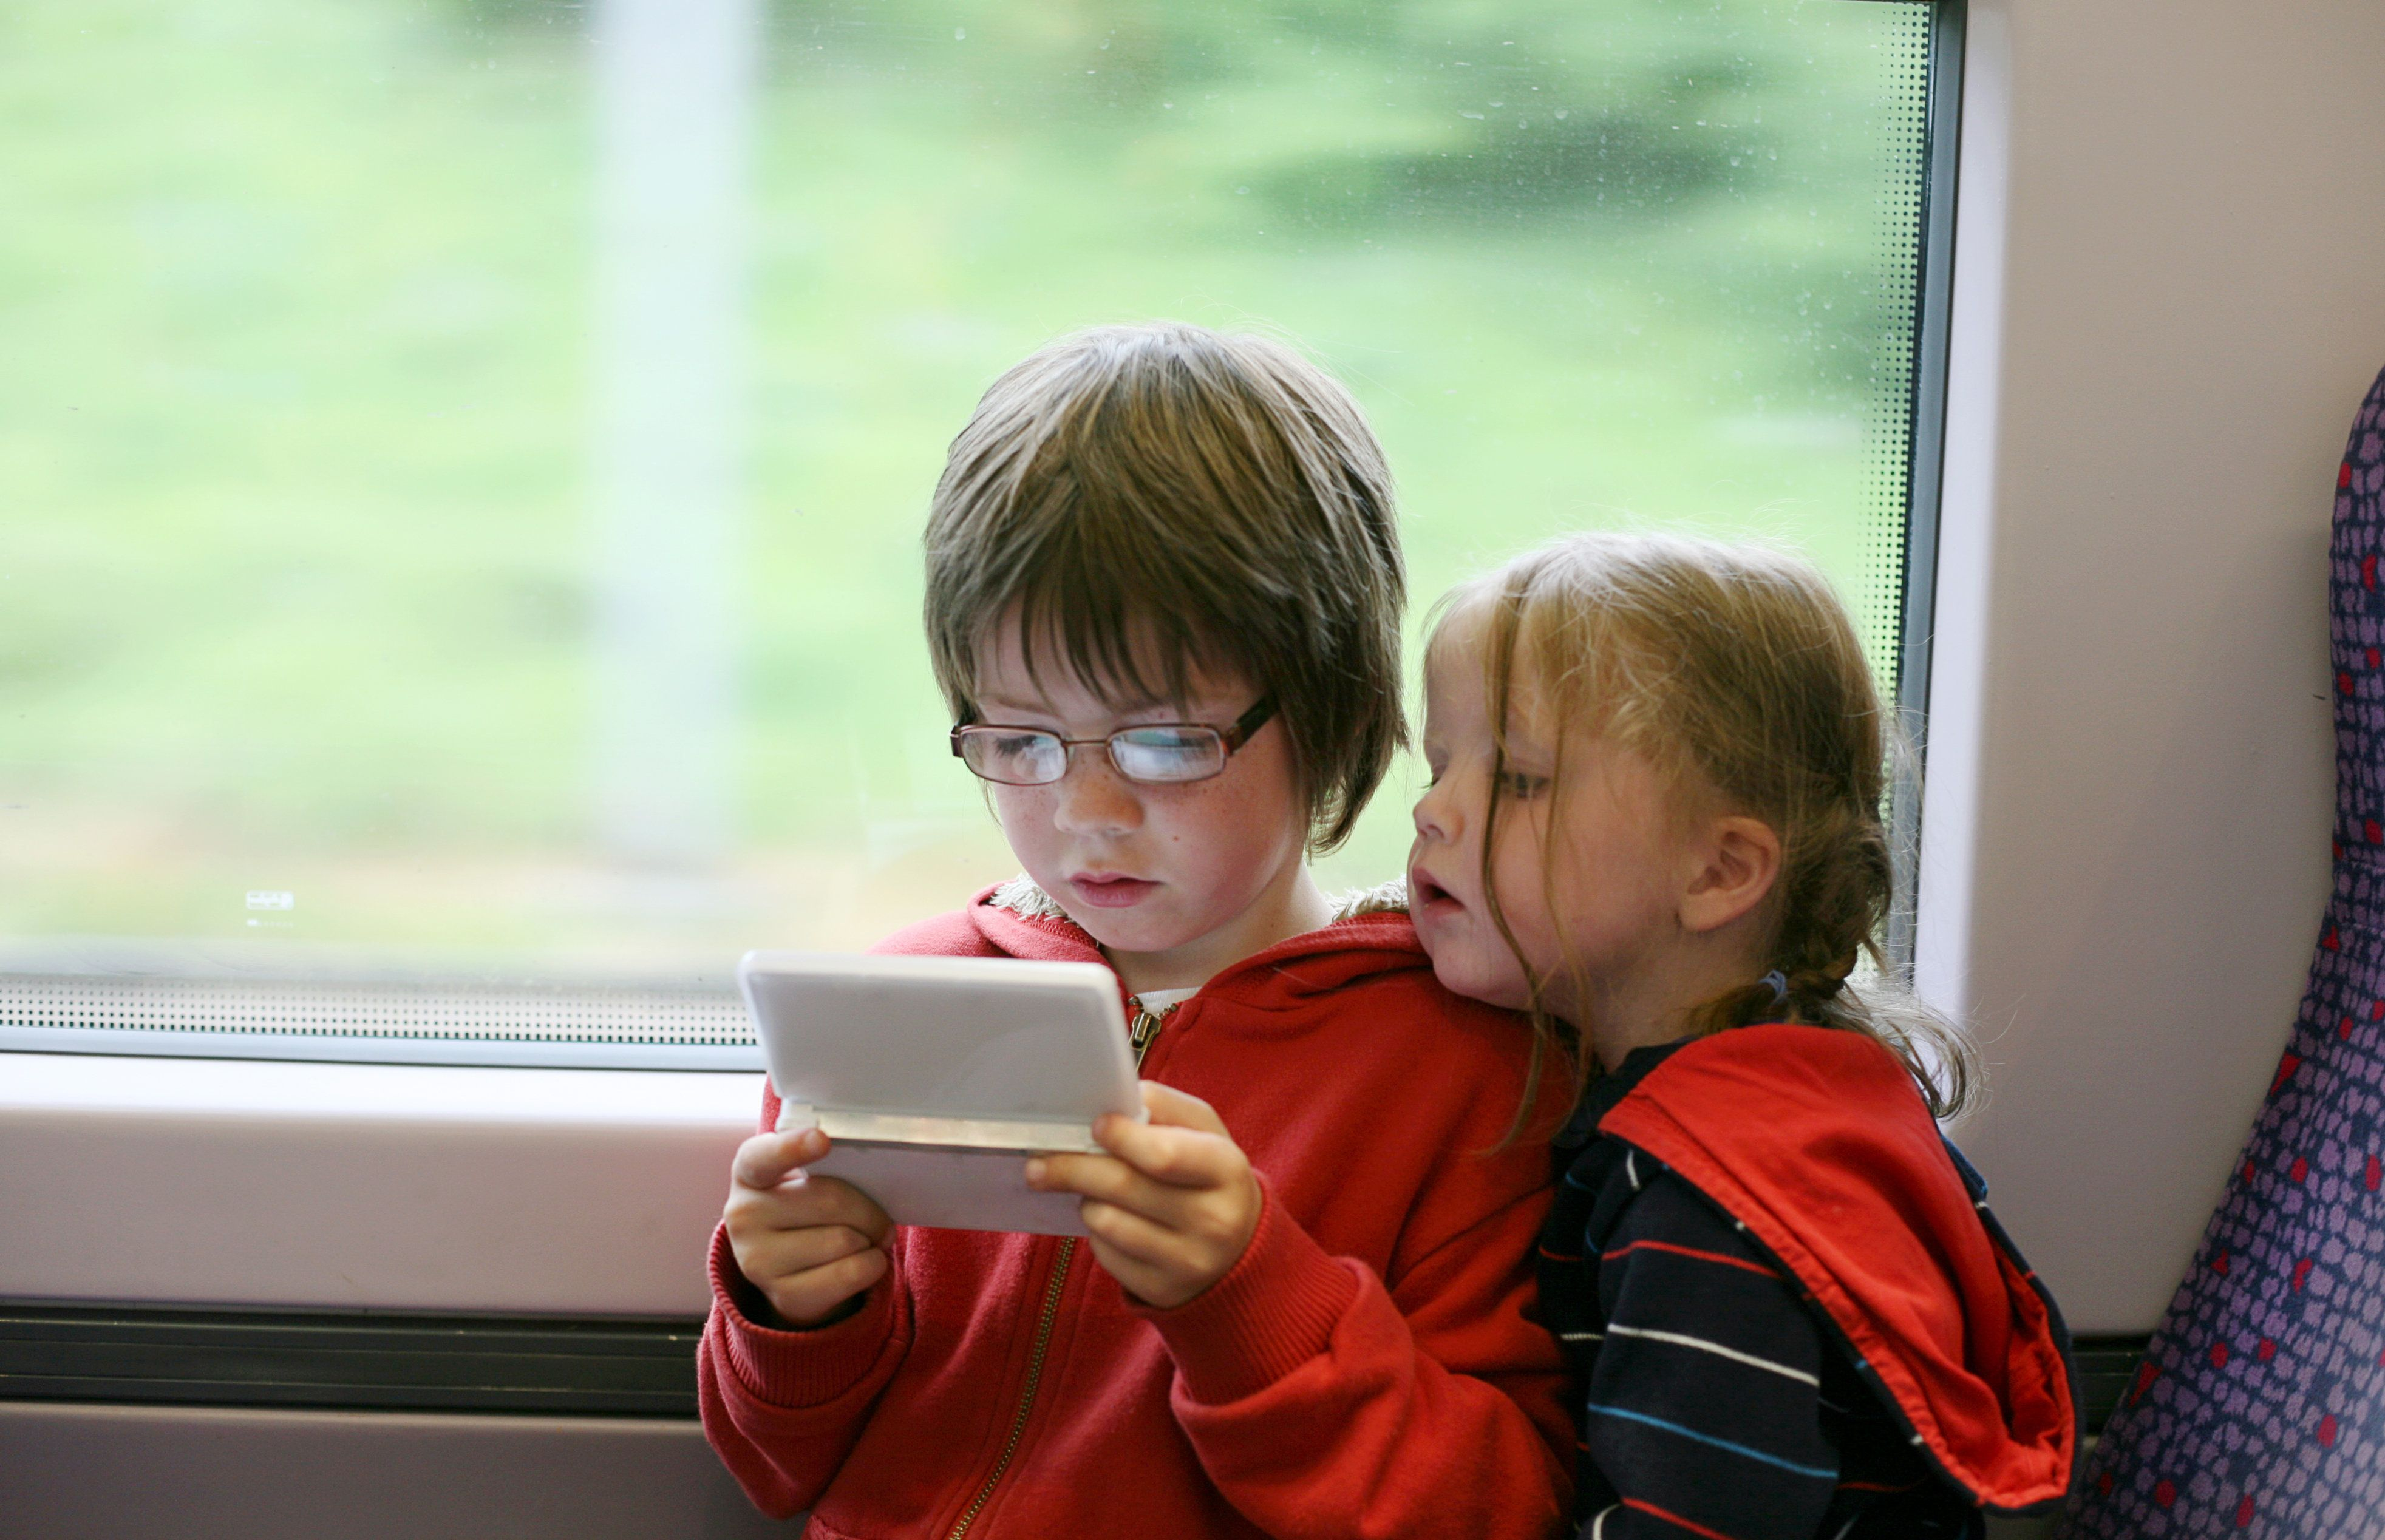 Boy and girl in train journey concentrating on handheld video game console.